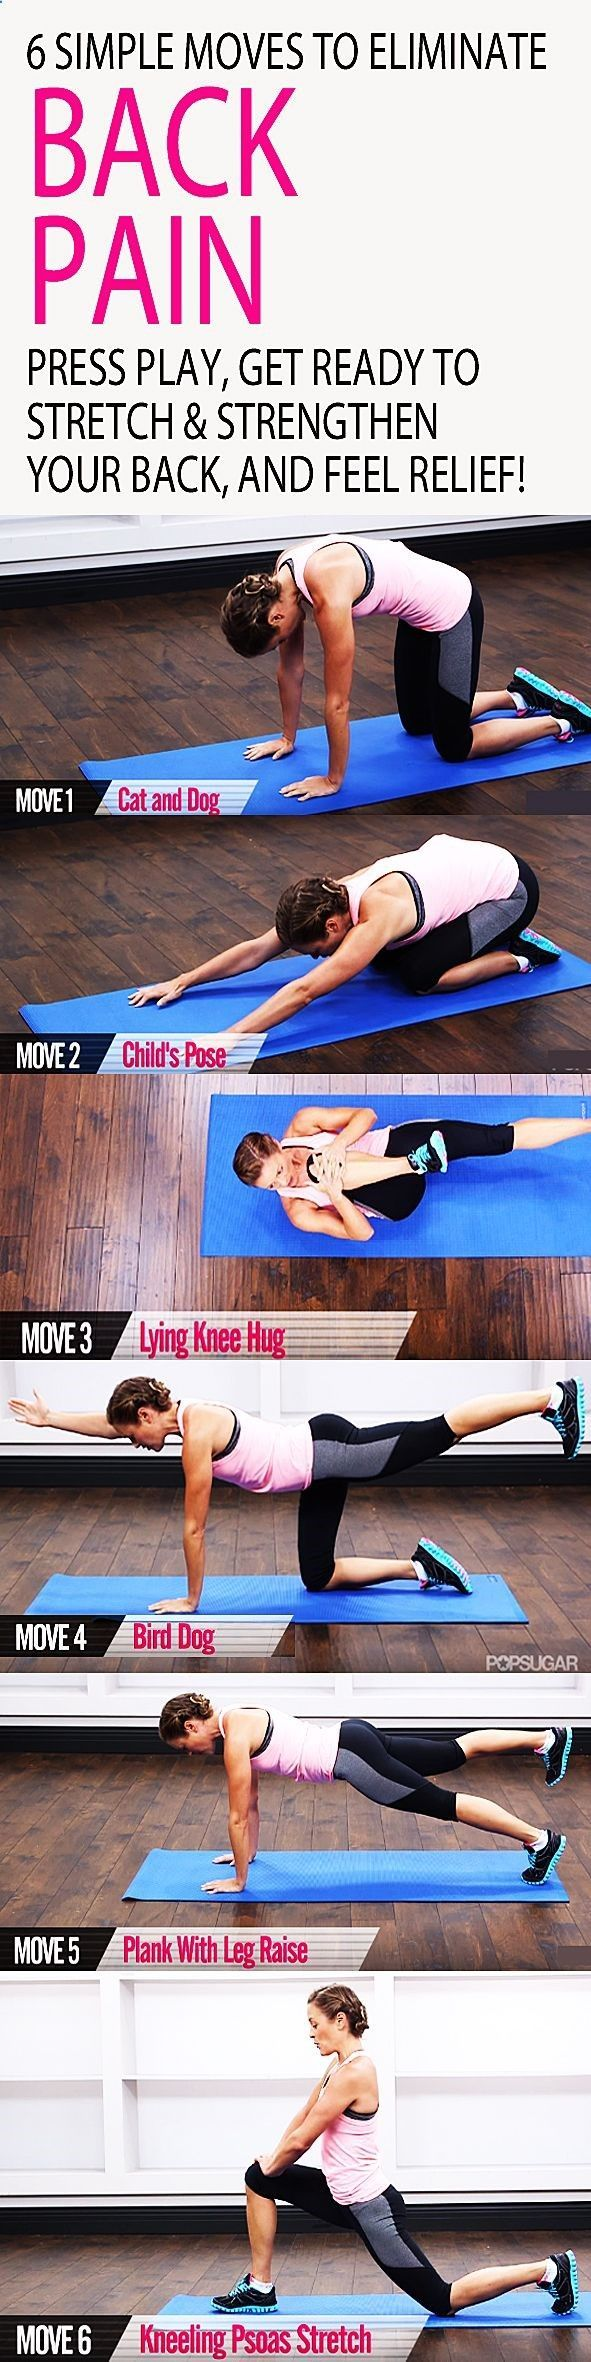 Sciatica Treatment: 6 Best Exercises To Strengthen Your BackVideos